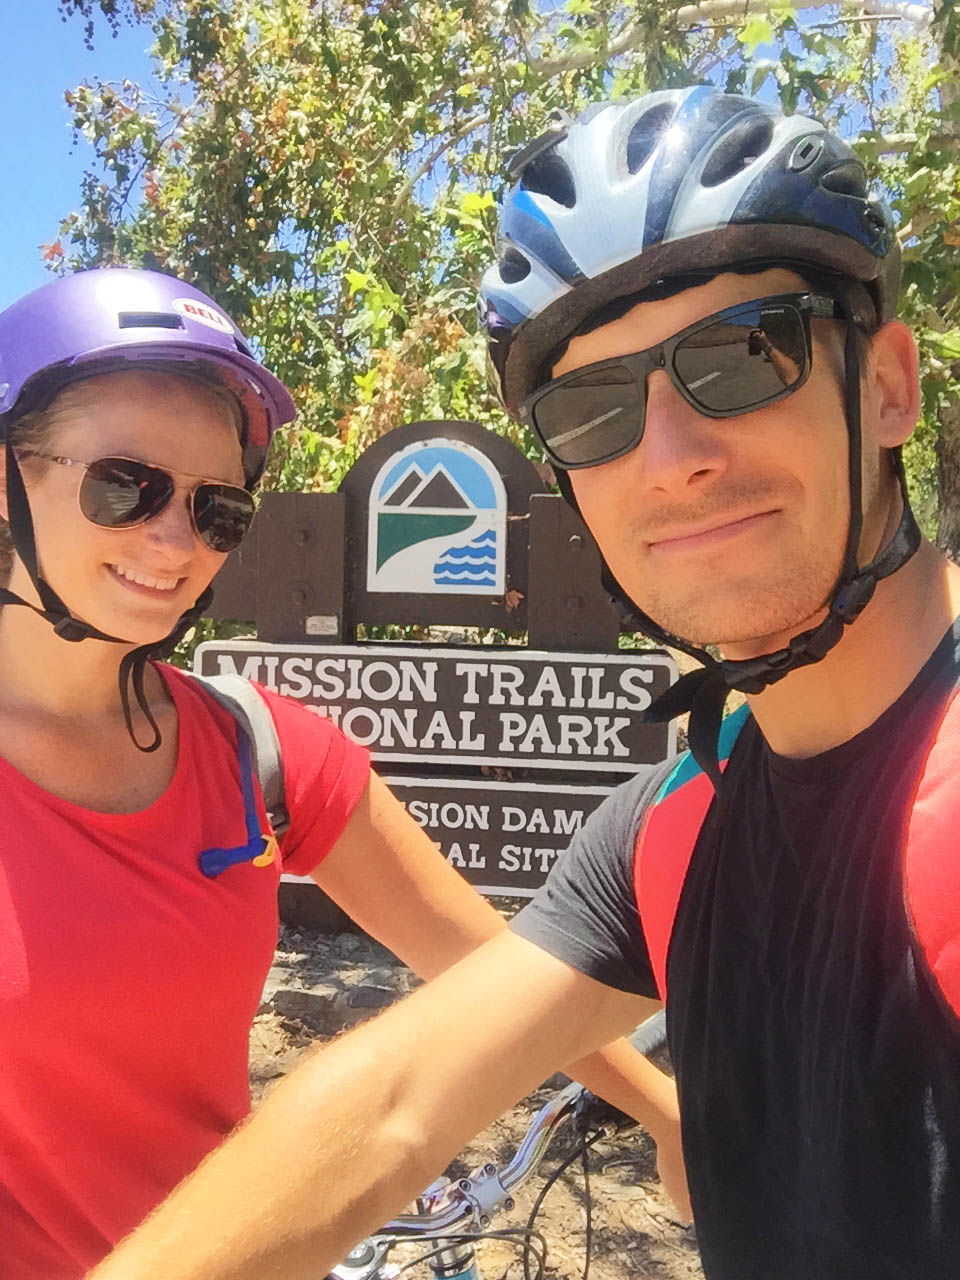 Mission Trails biking